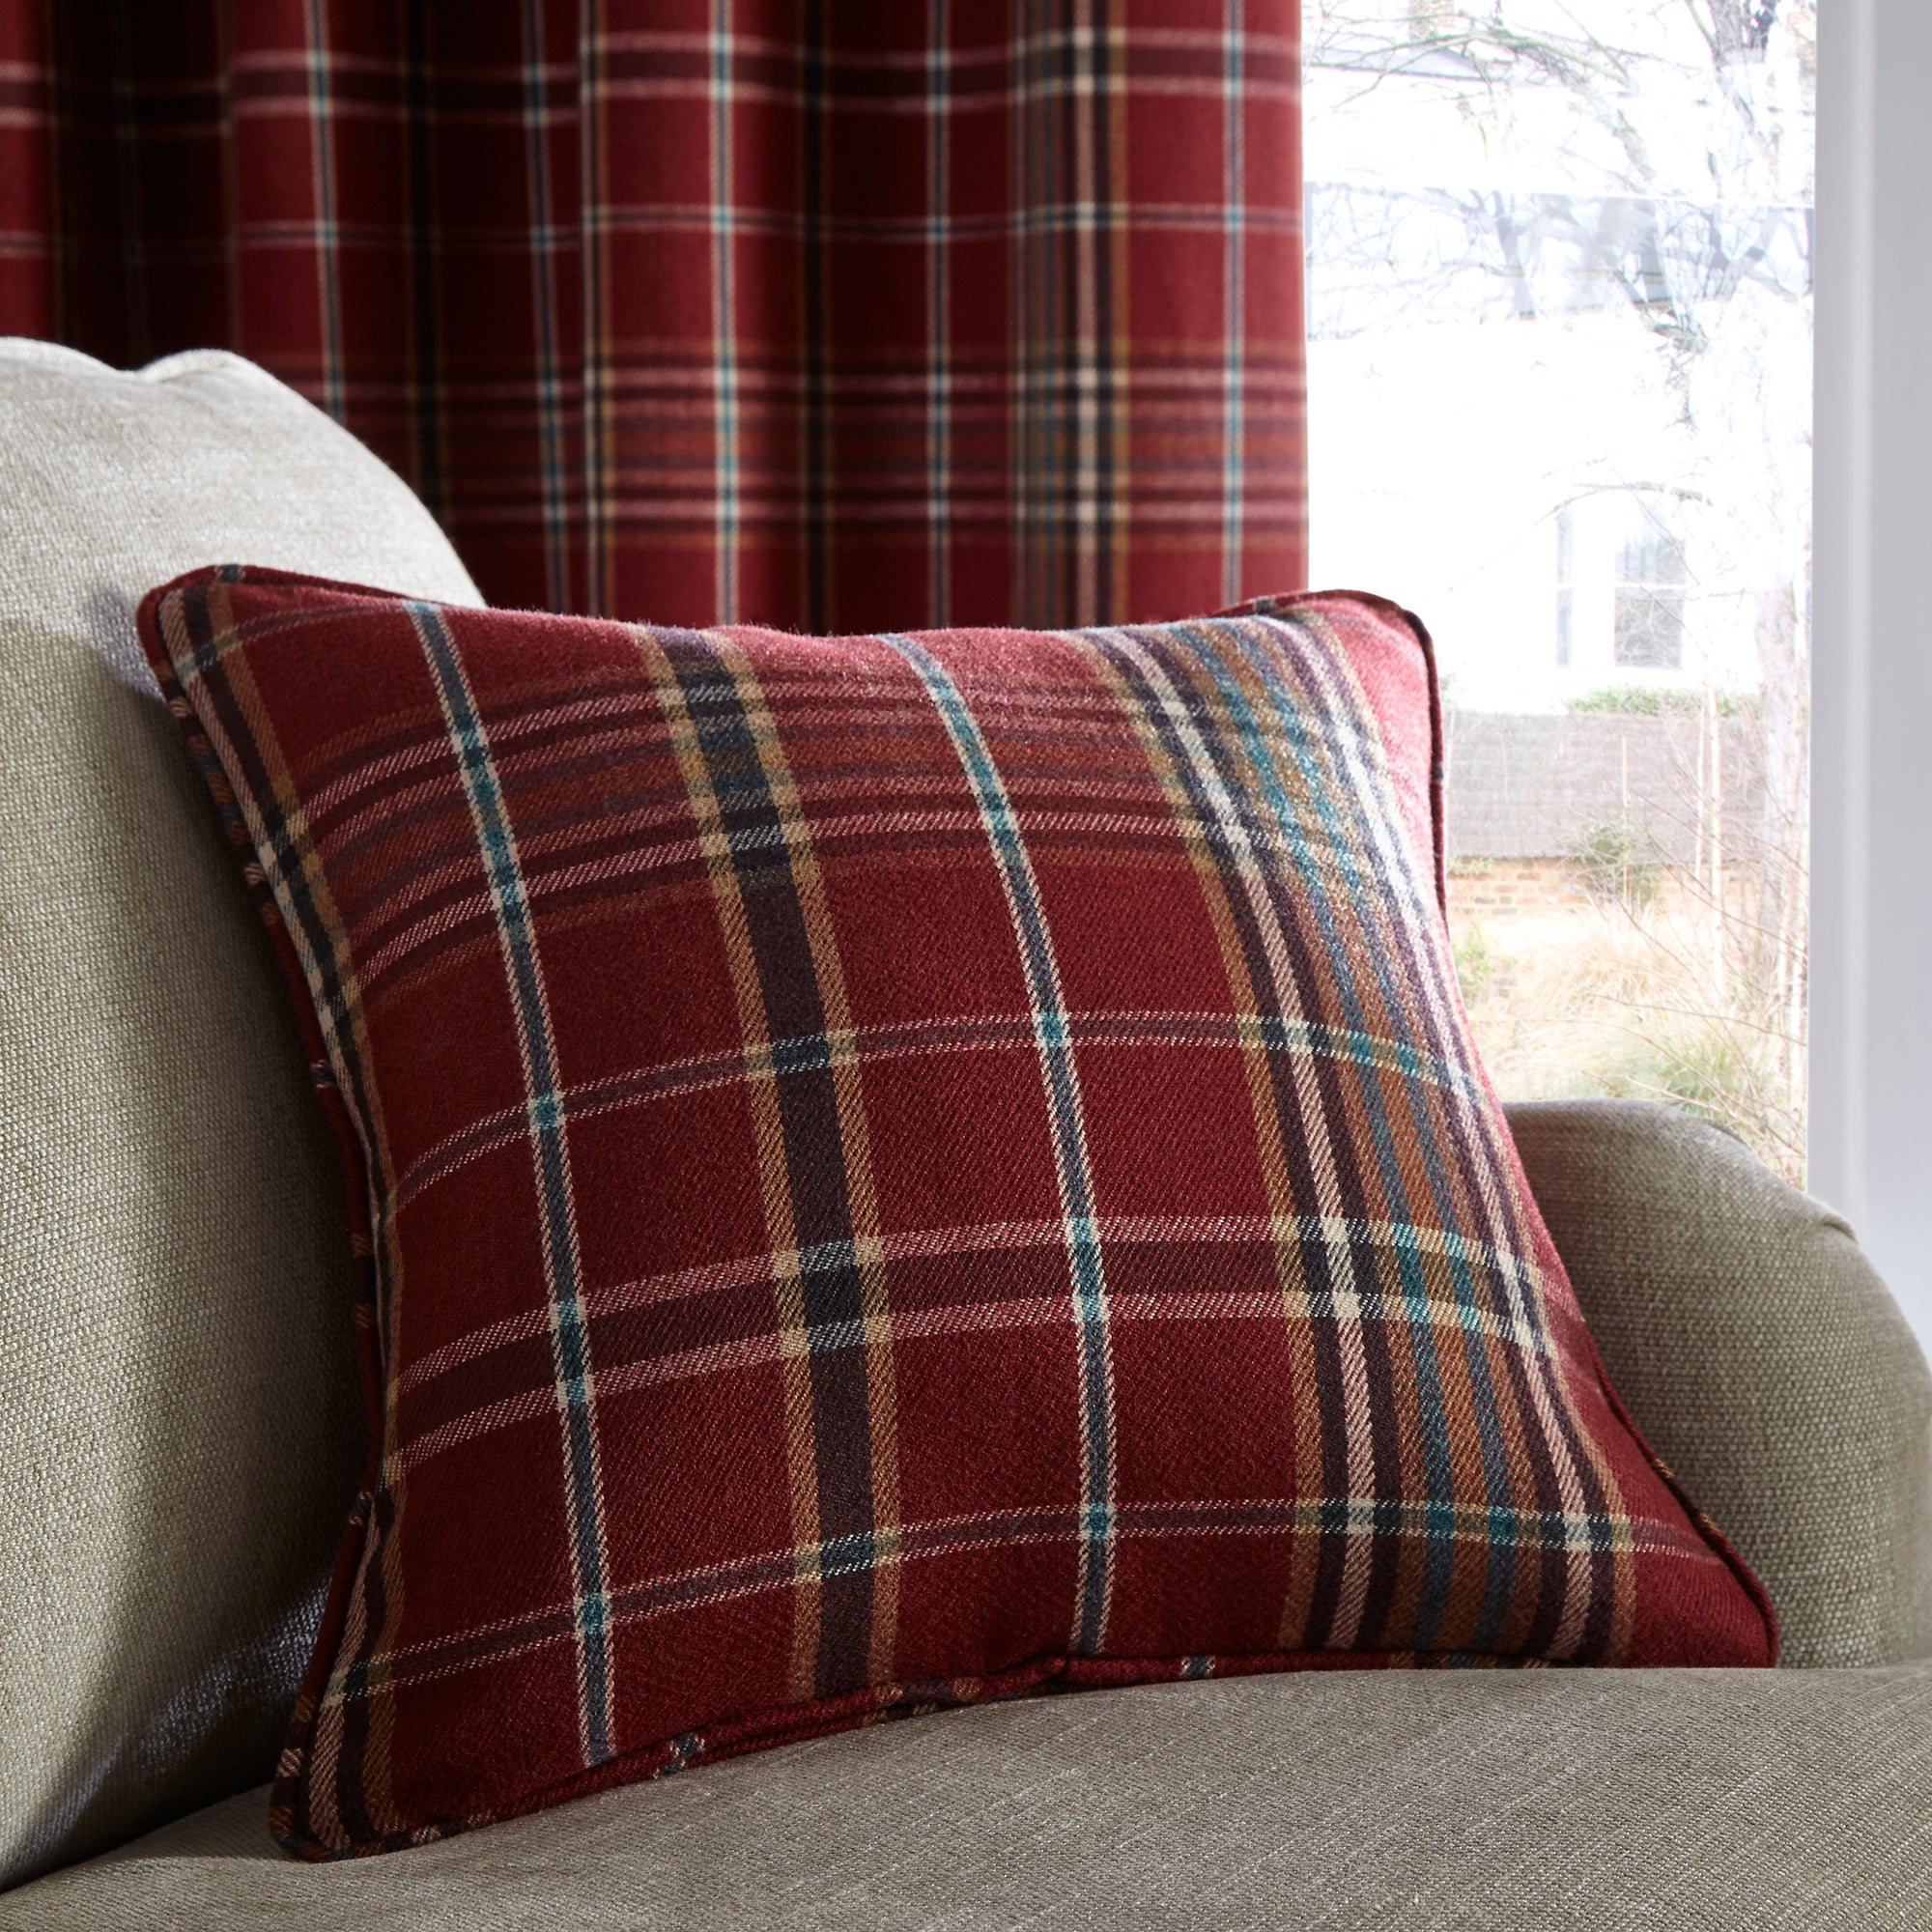 Photo of Melrose red cushion red- blue and yellow